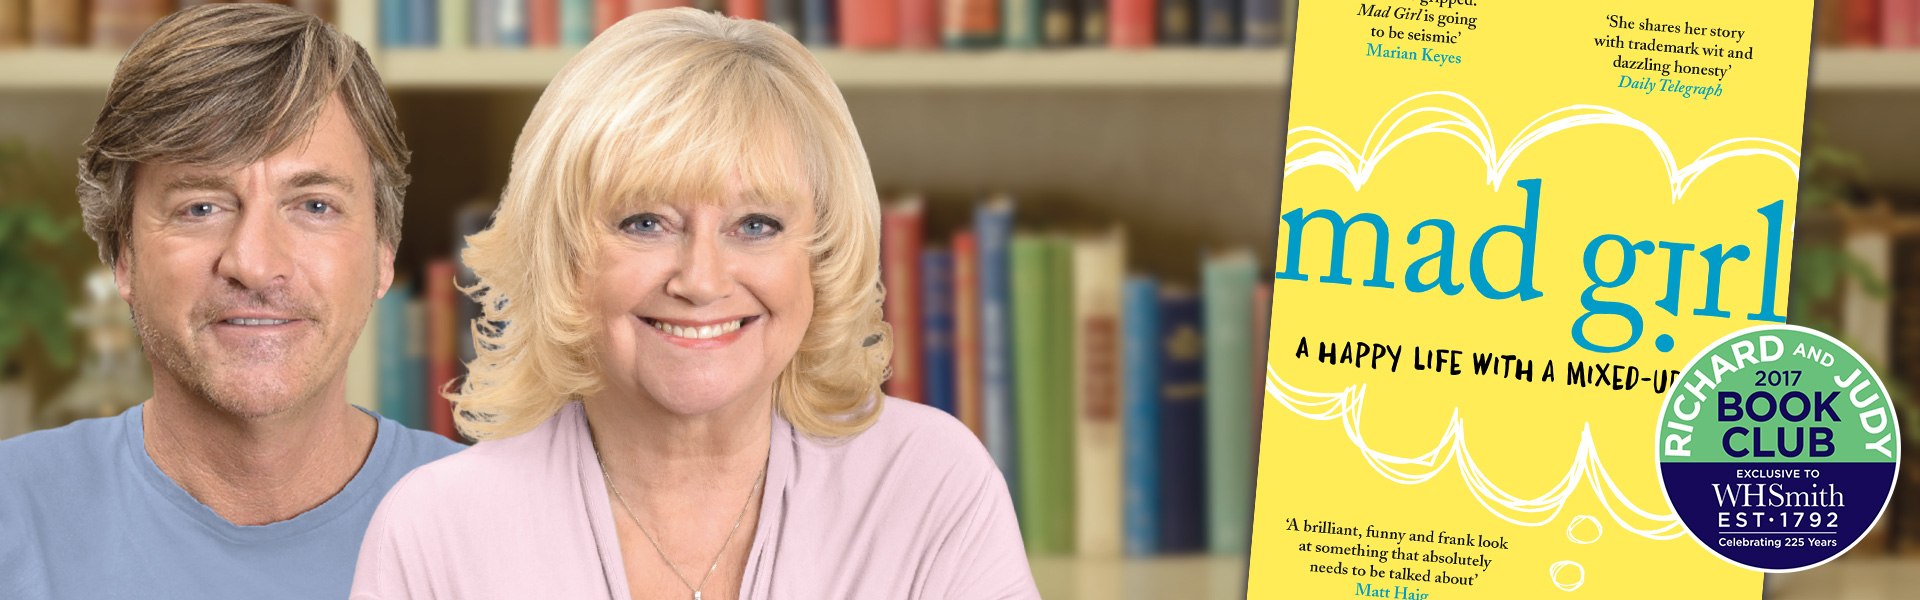 Richard and Judy Review: Mad Girl by Bryony Gordon